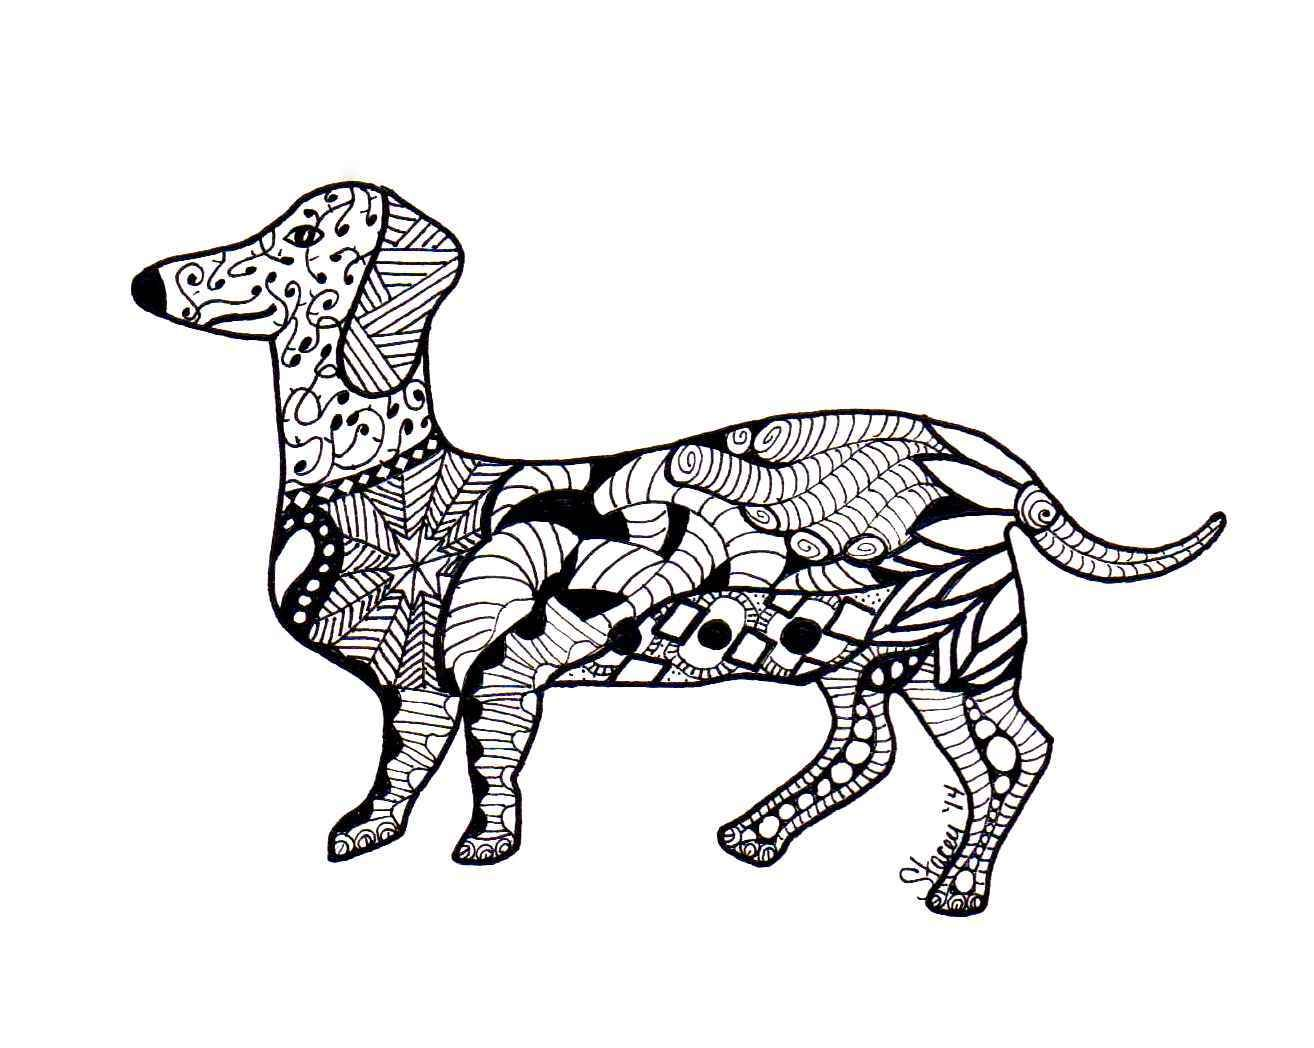 175 best Dogs to color images on Pinterest | Coloring books, Vintage ...